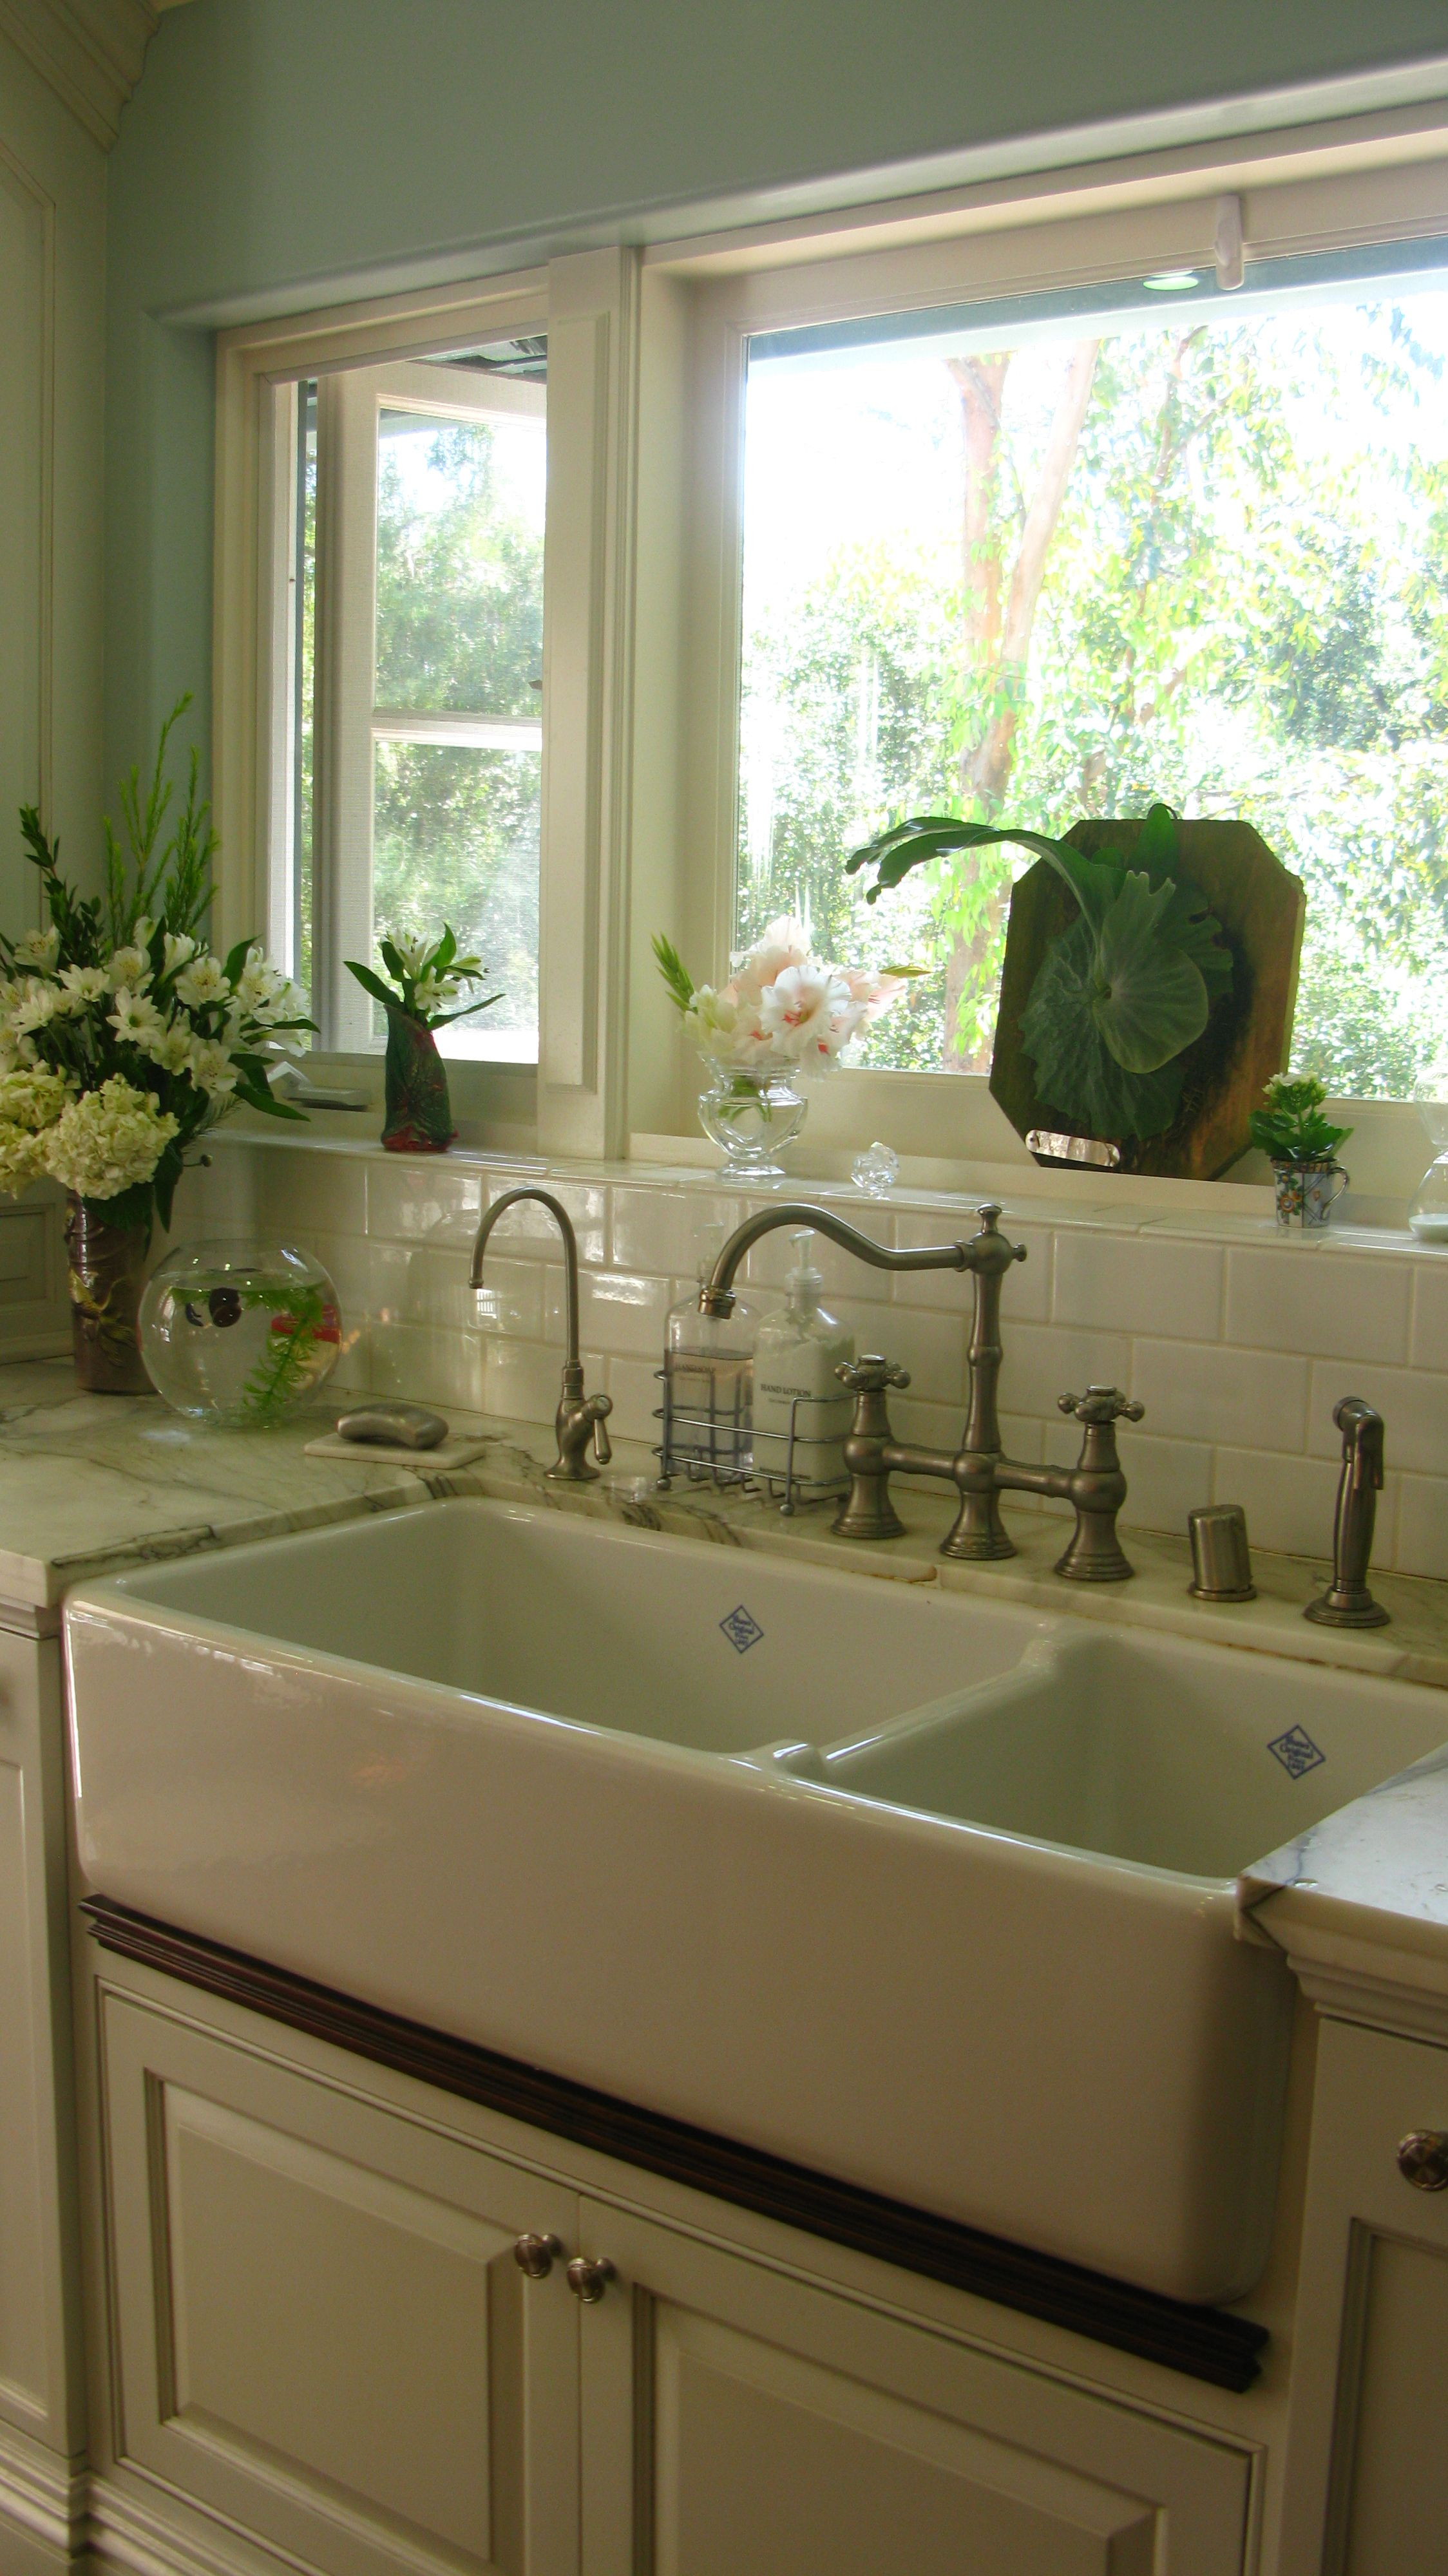 love that double sink and polished hardward kitchens i adore pinterest sinks kitchens on kitchen sink id=30468